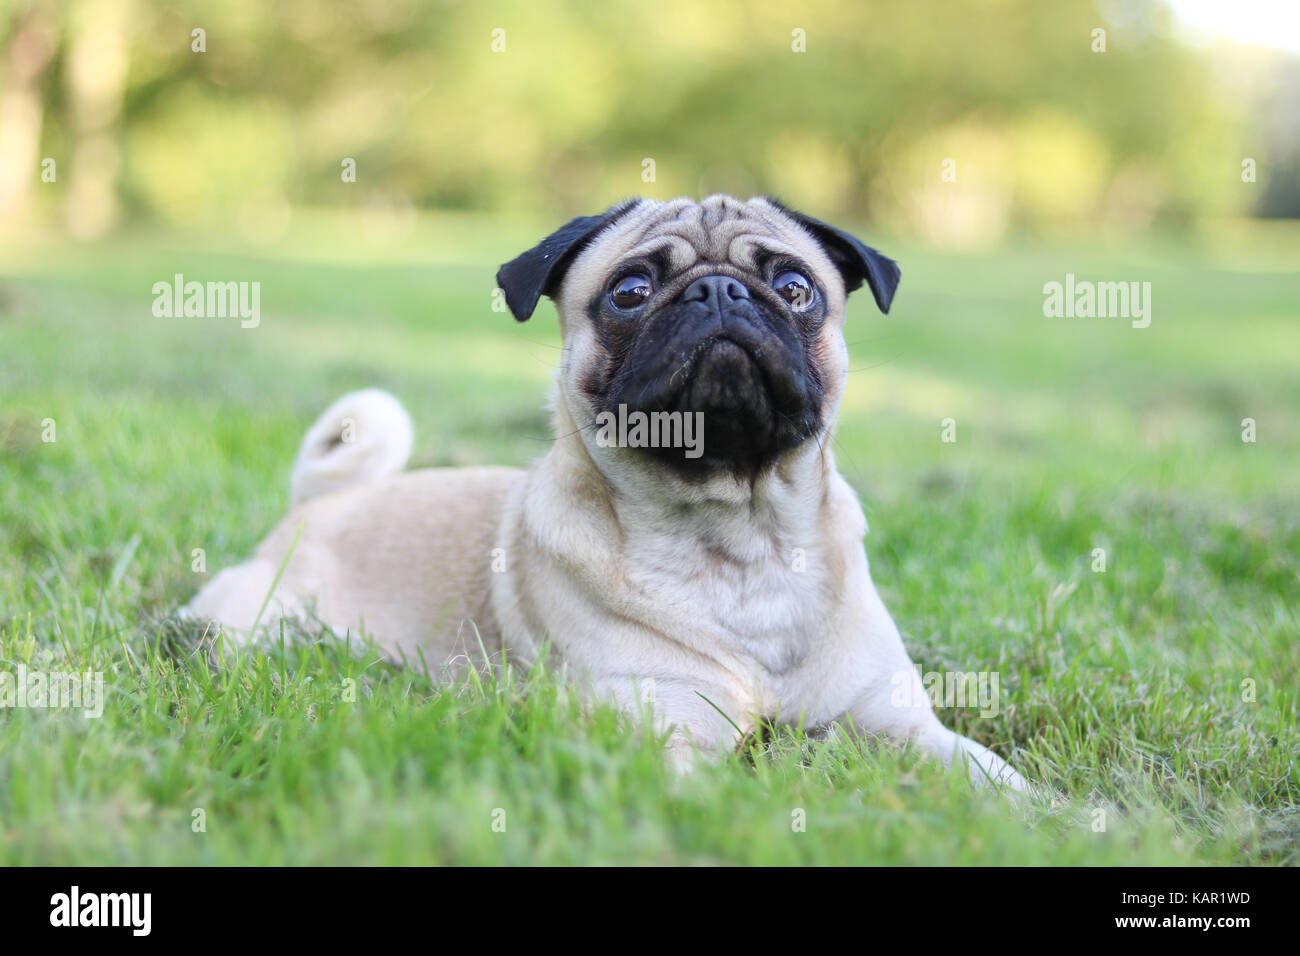 One year old fawn male Pug - Stock Image